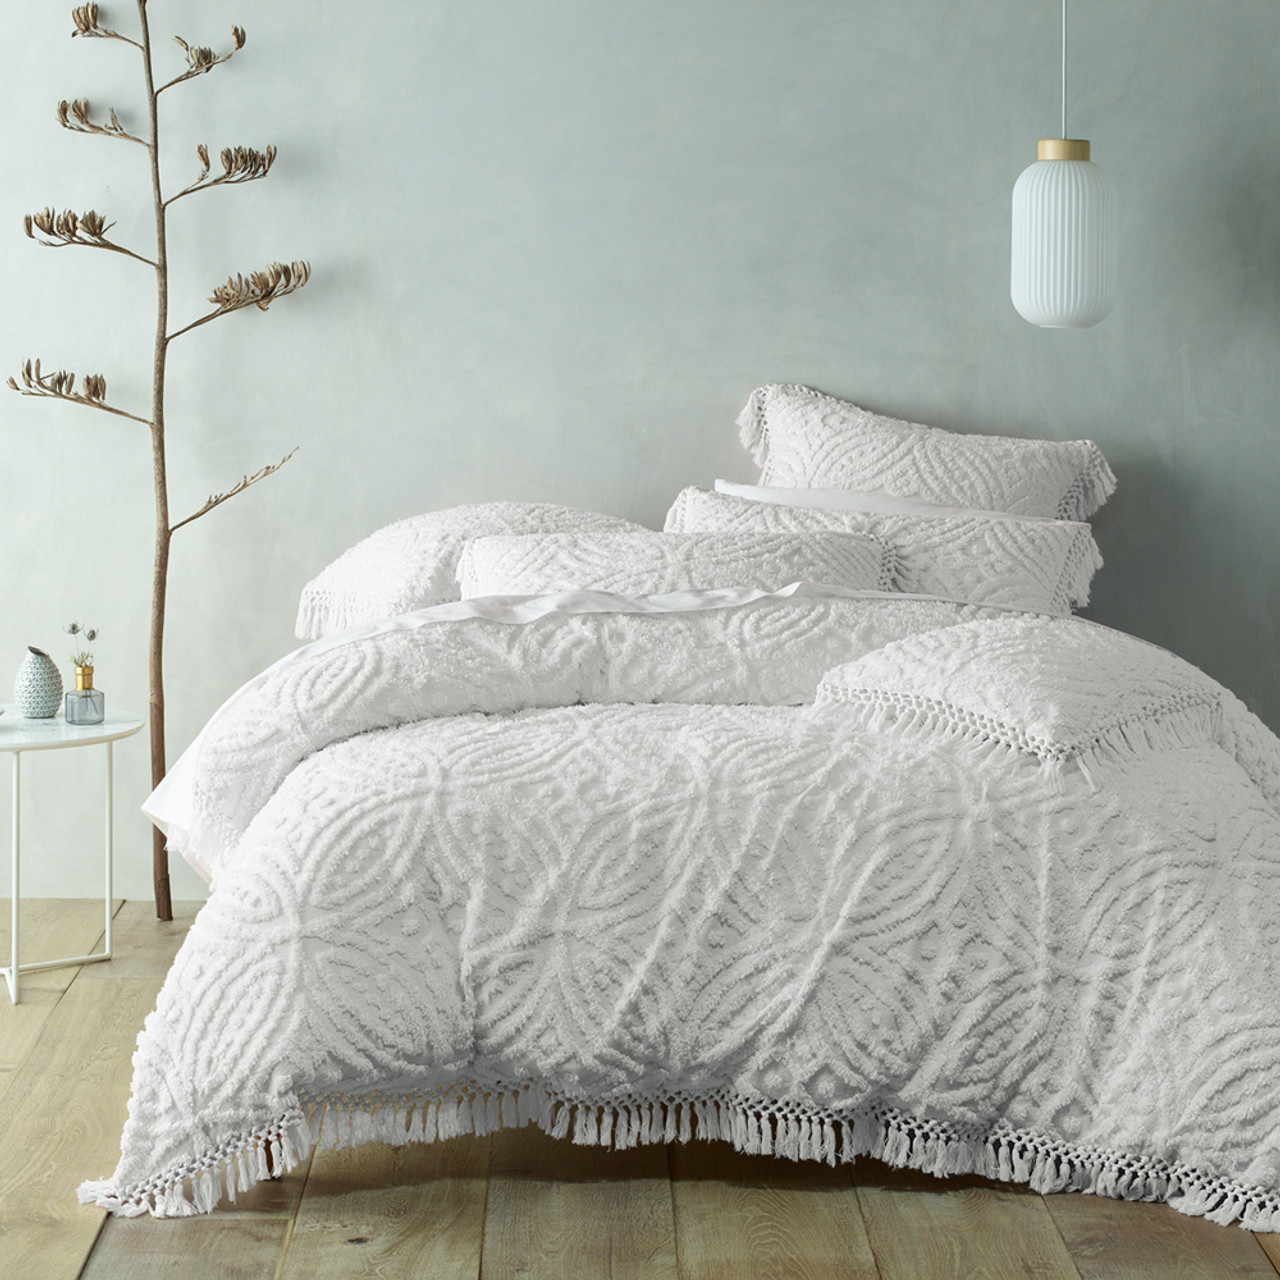 Savannah White Quilt Cover Set Queen Bed Bianca Mylinen